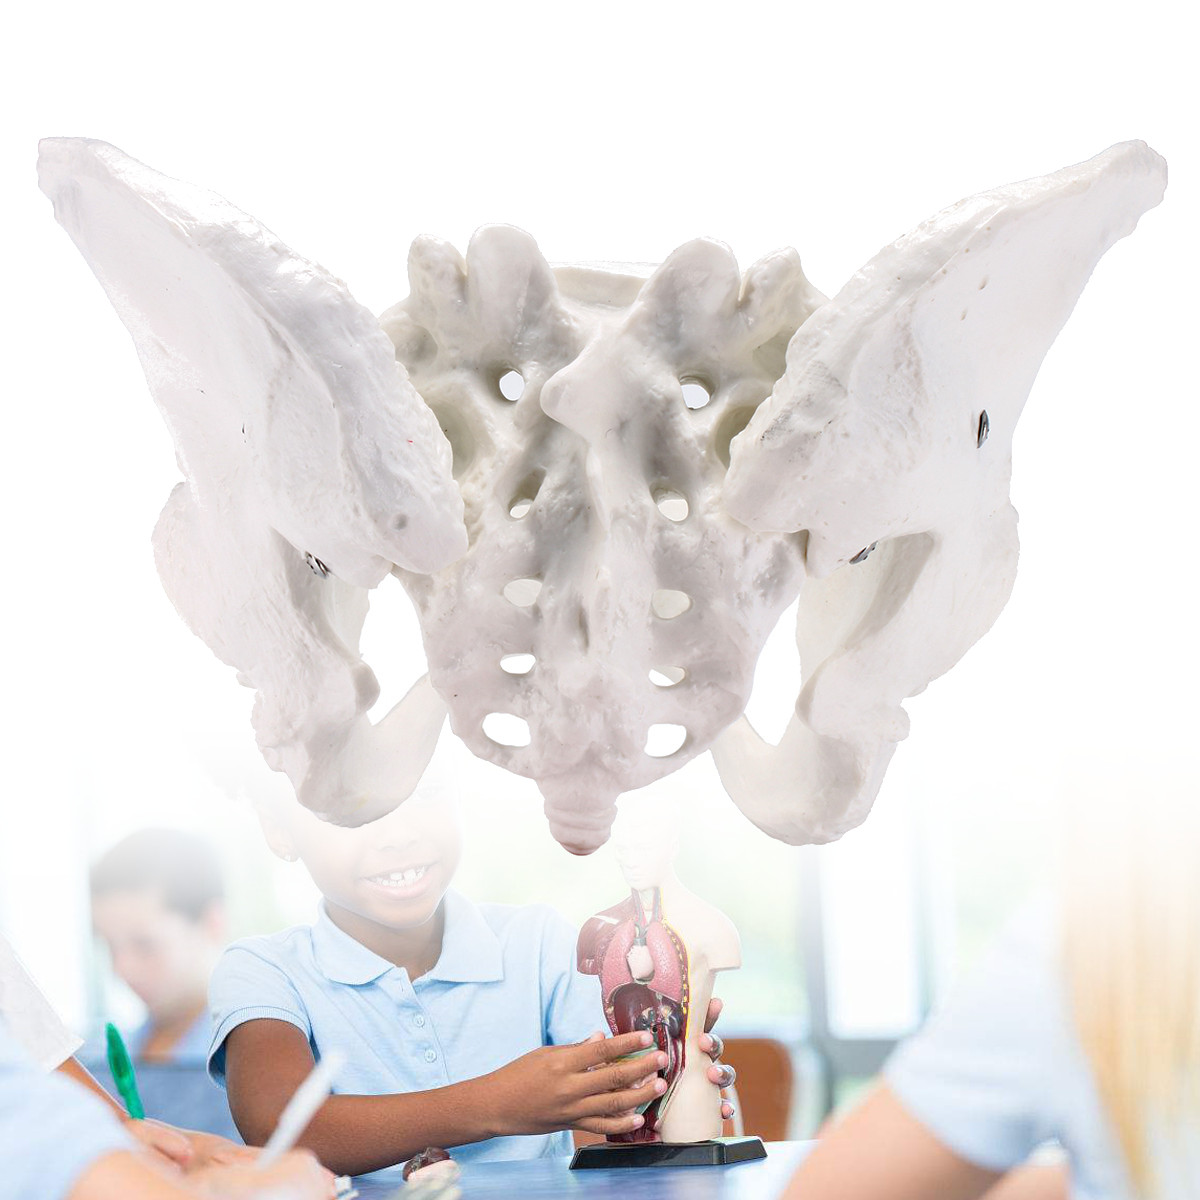 Human Anatomy Model Female Anatomical Pelvis Model Skeleton Anatomical Anatomy Pelvic Model Medical Science Education Supplies